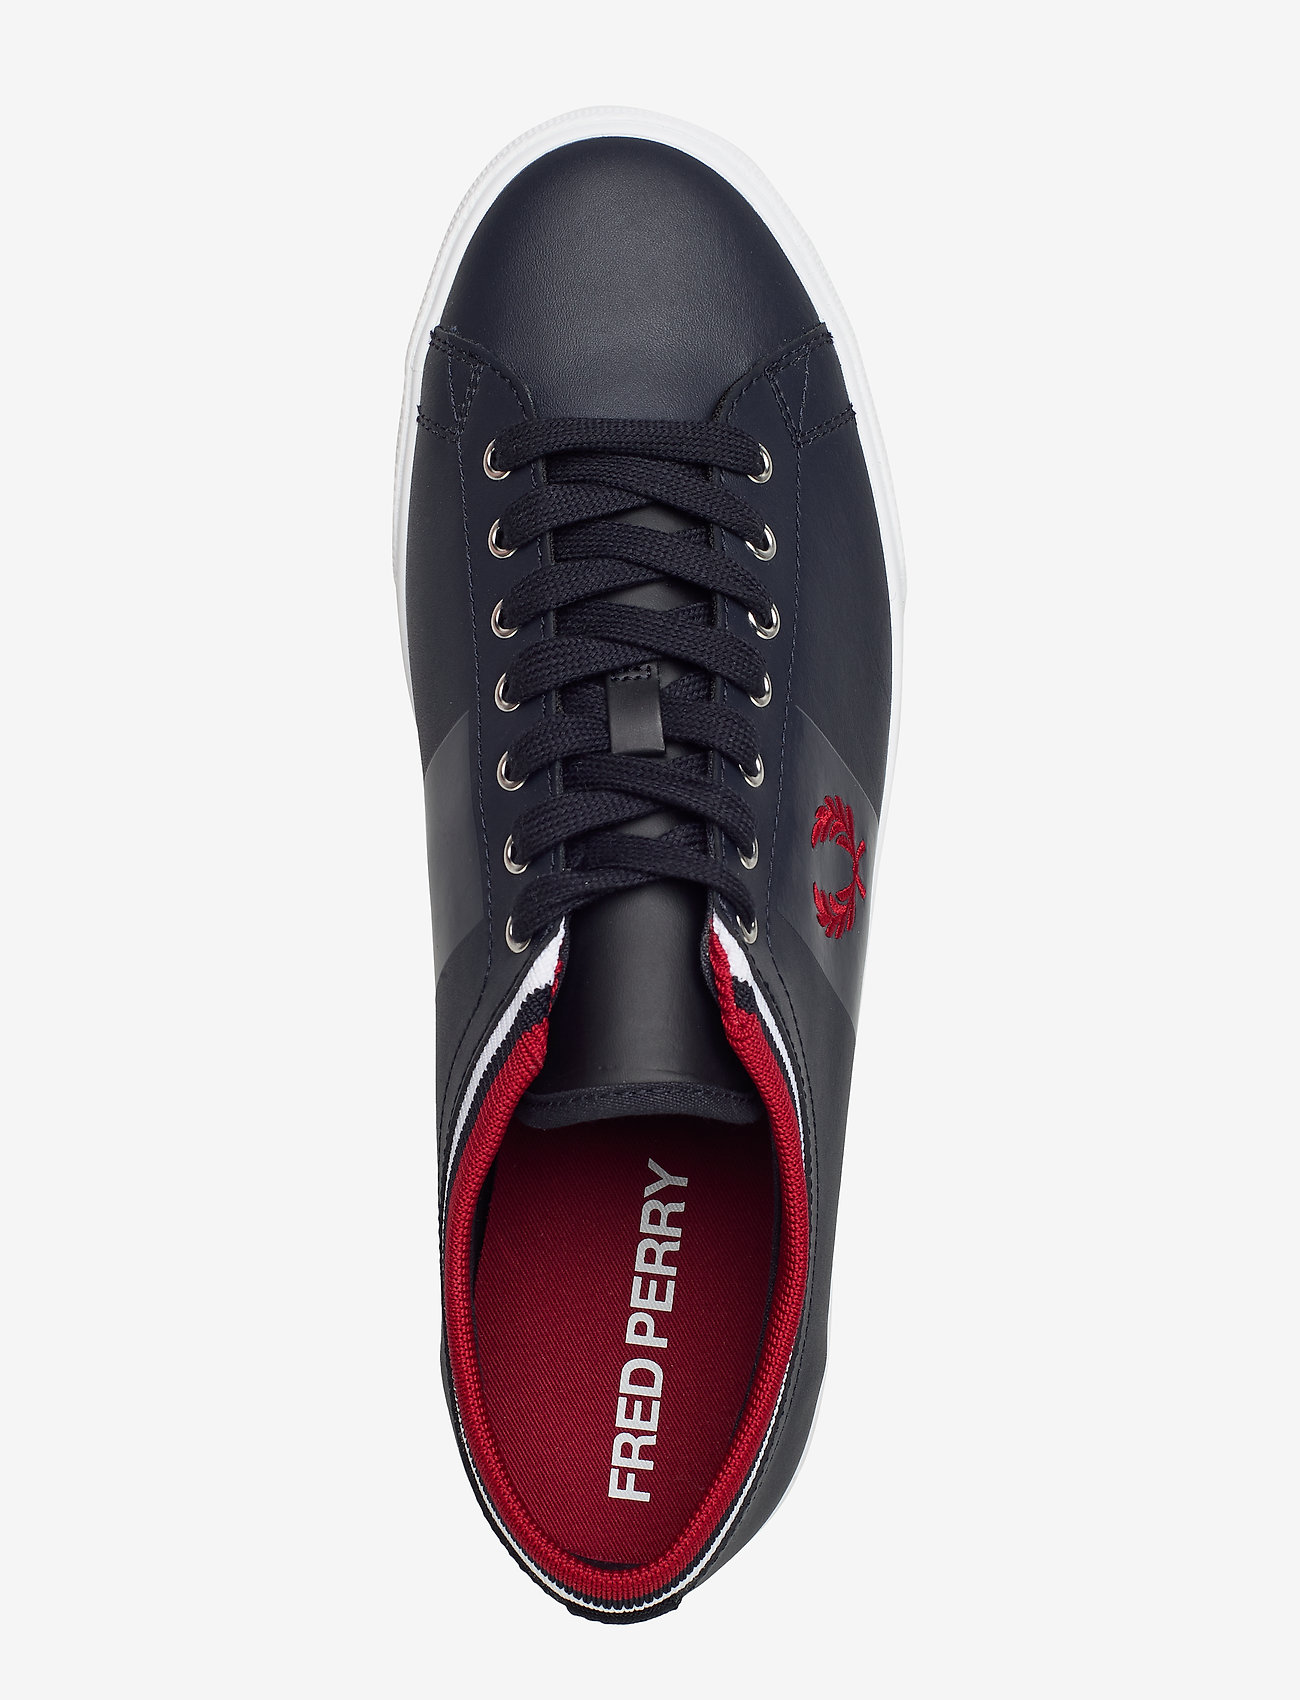 Unders. Tip. Cuff Lthr (Navy) - Fred Perry